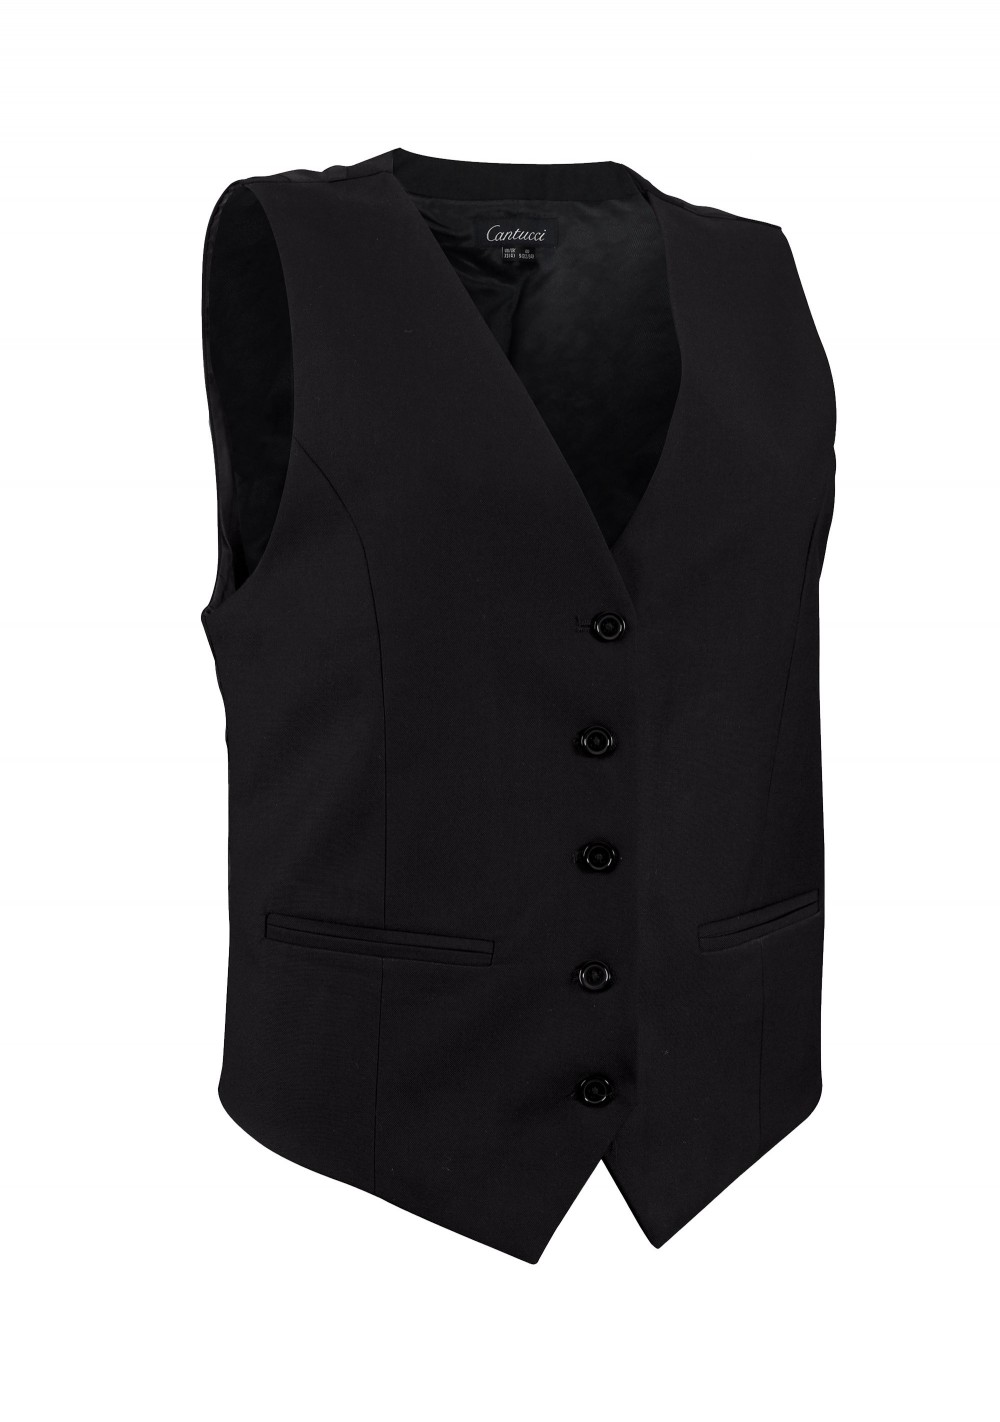 Women's Uniform Suit Vest in Solid Black